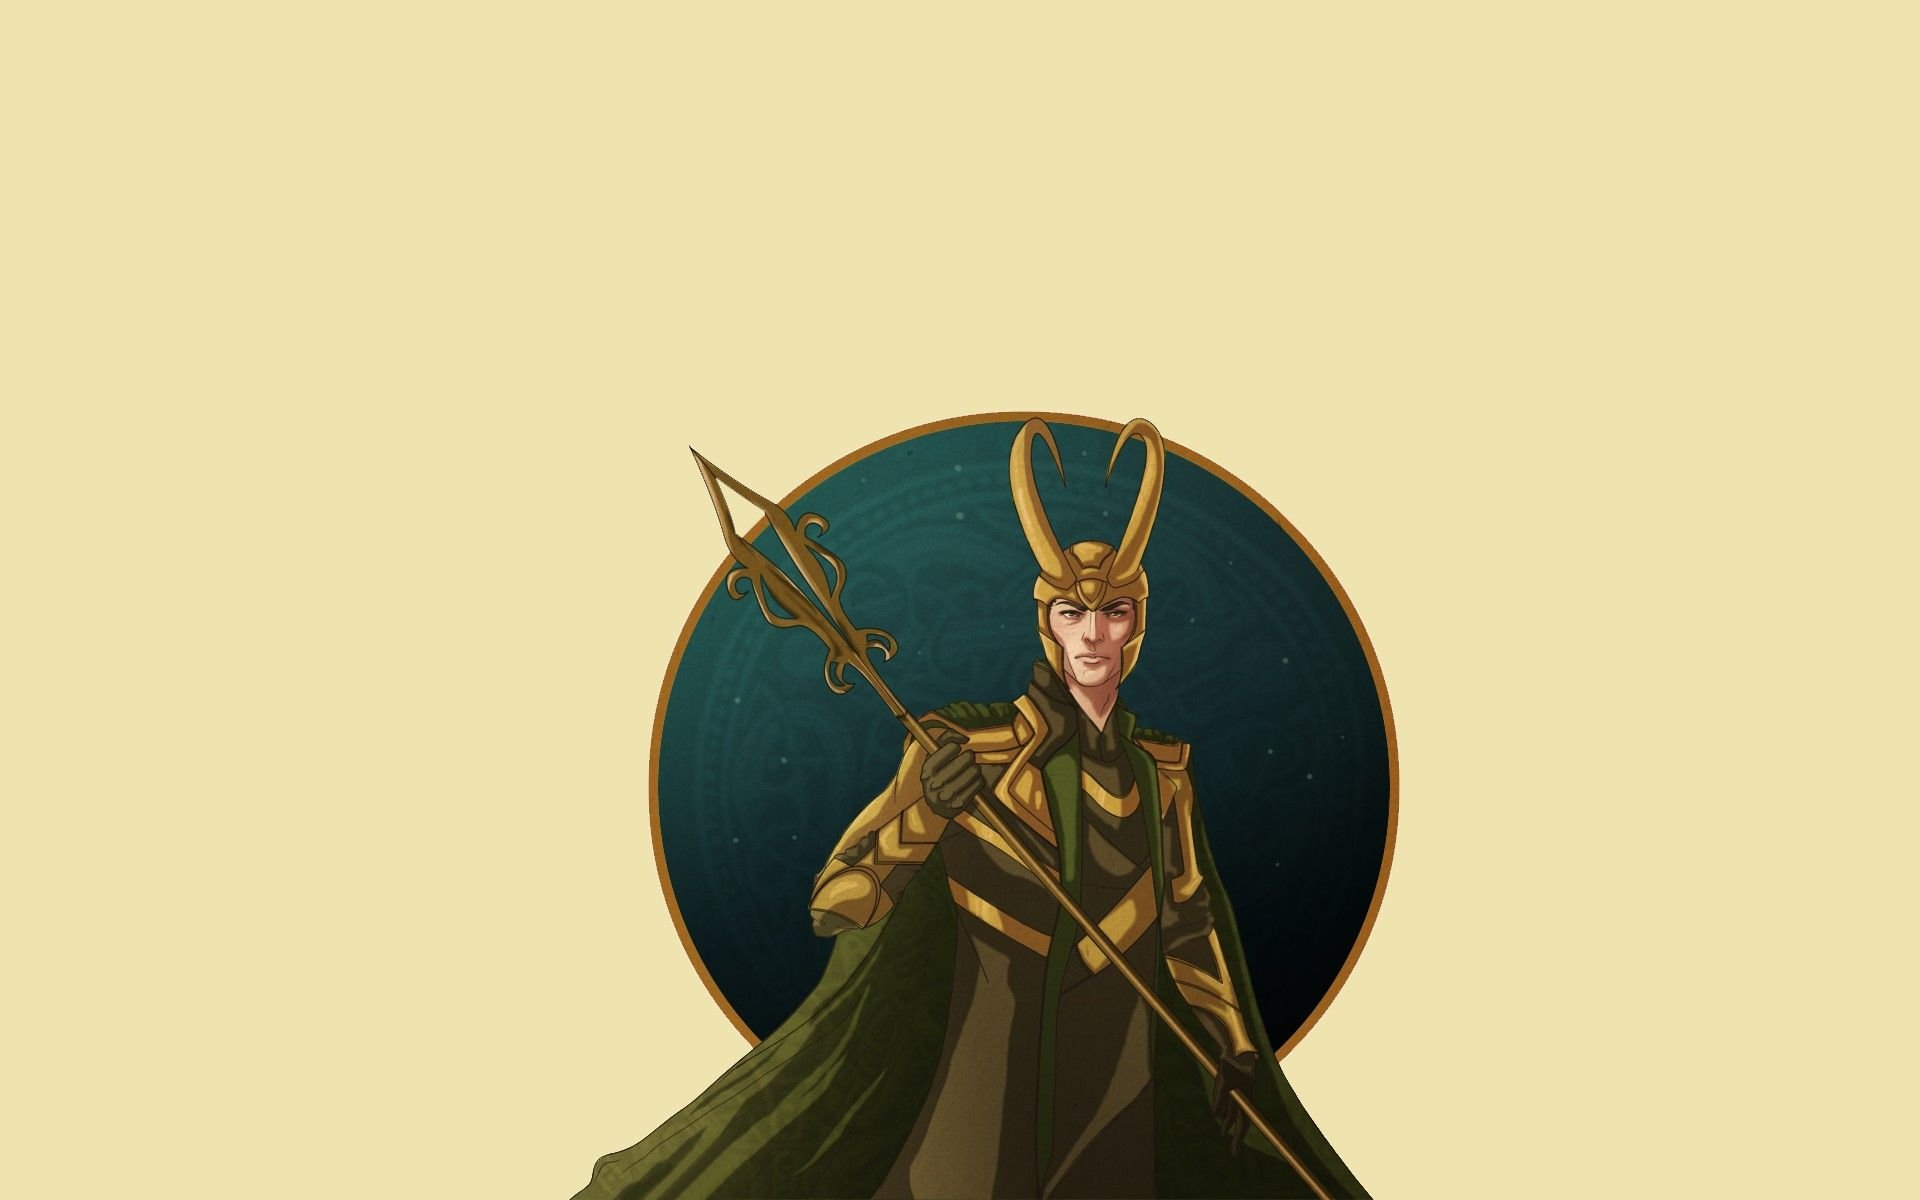 Loki wallpapers top free loki backgrounds wallpaperaccess - Loki phone wallpaper ...